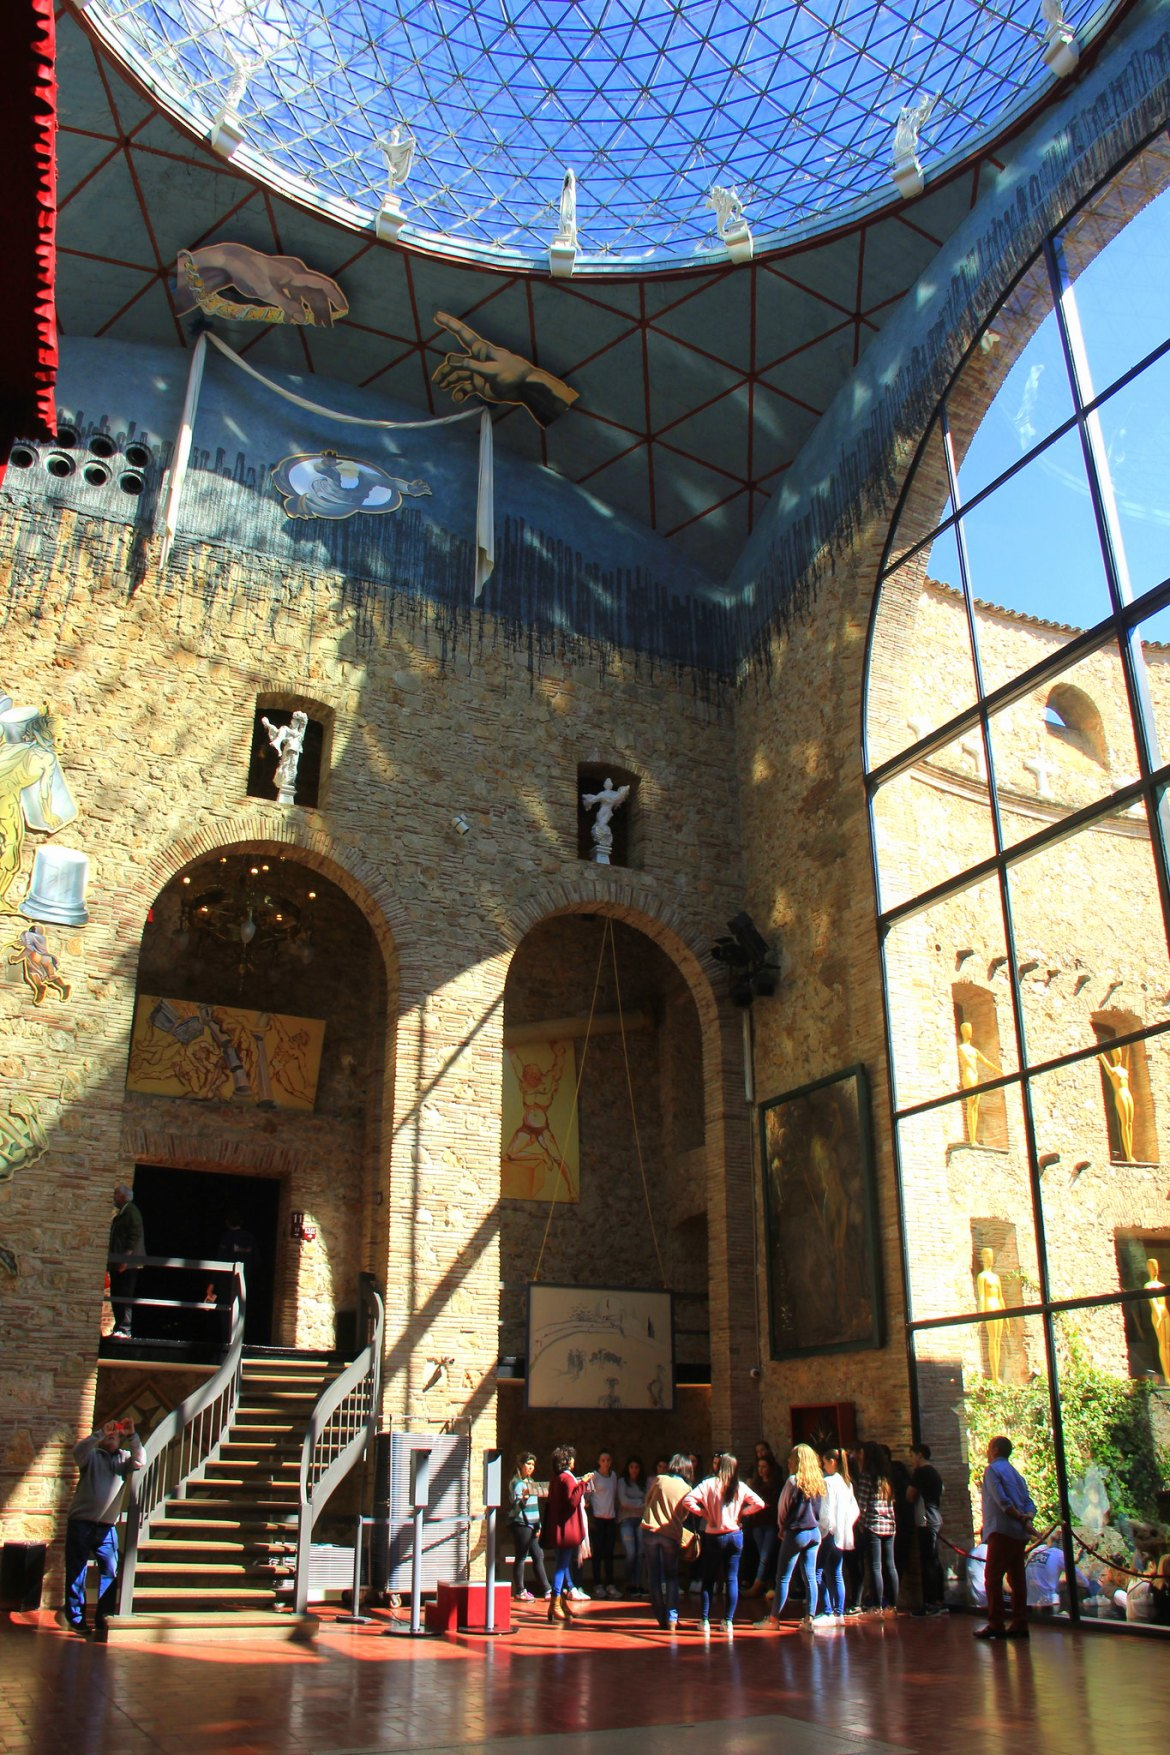 Visit the Dali museum in Spain